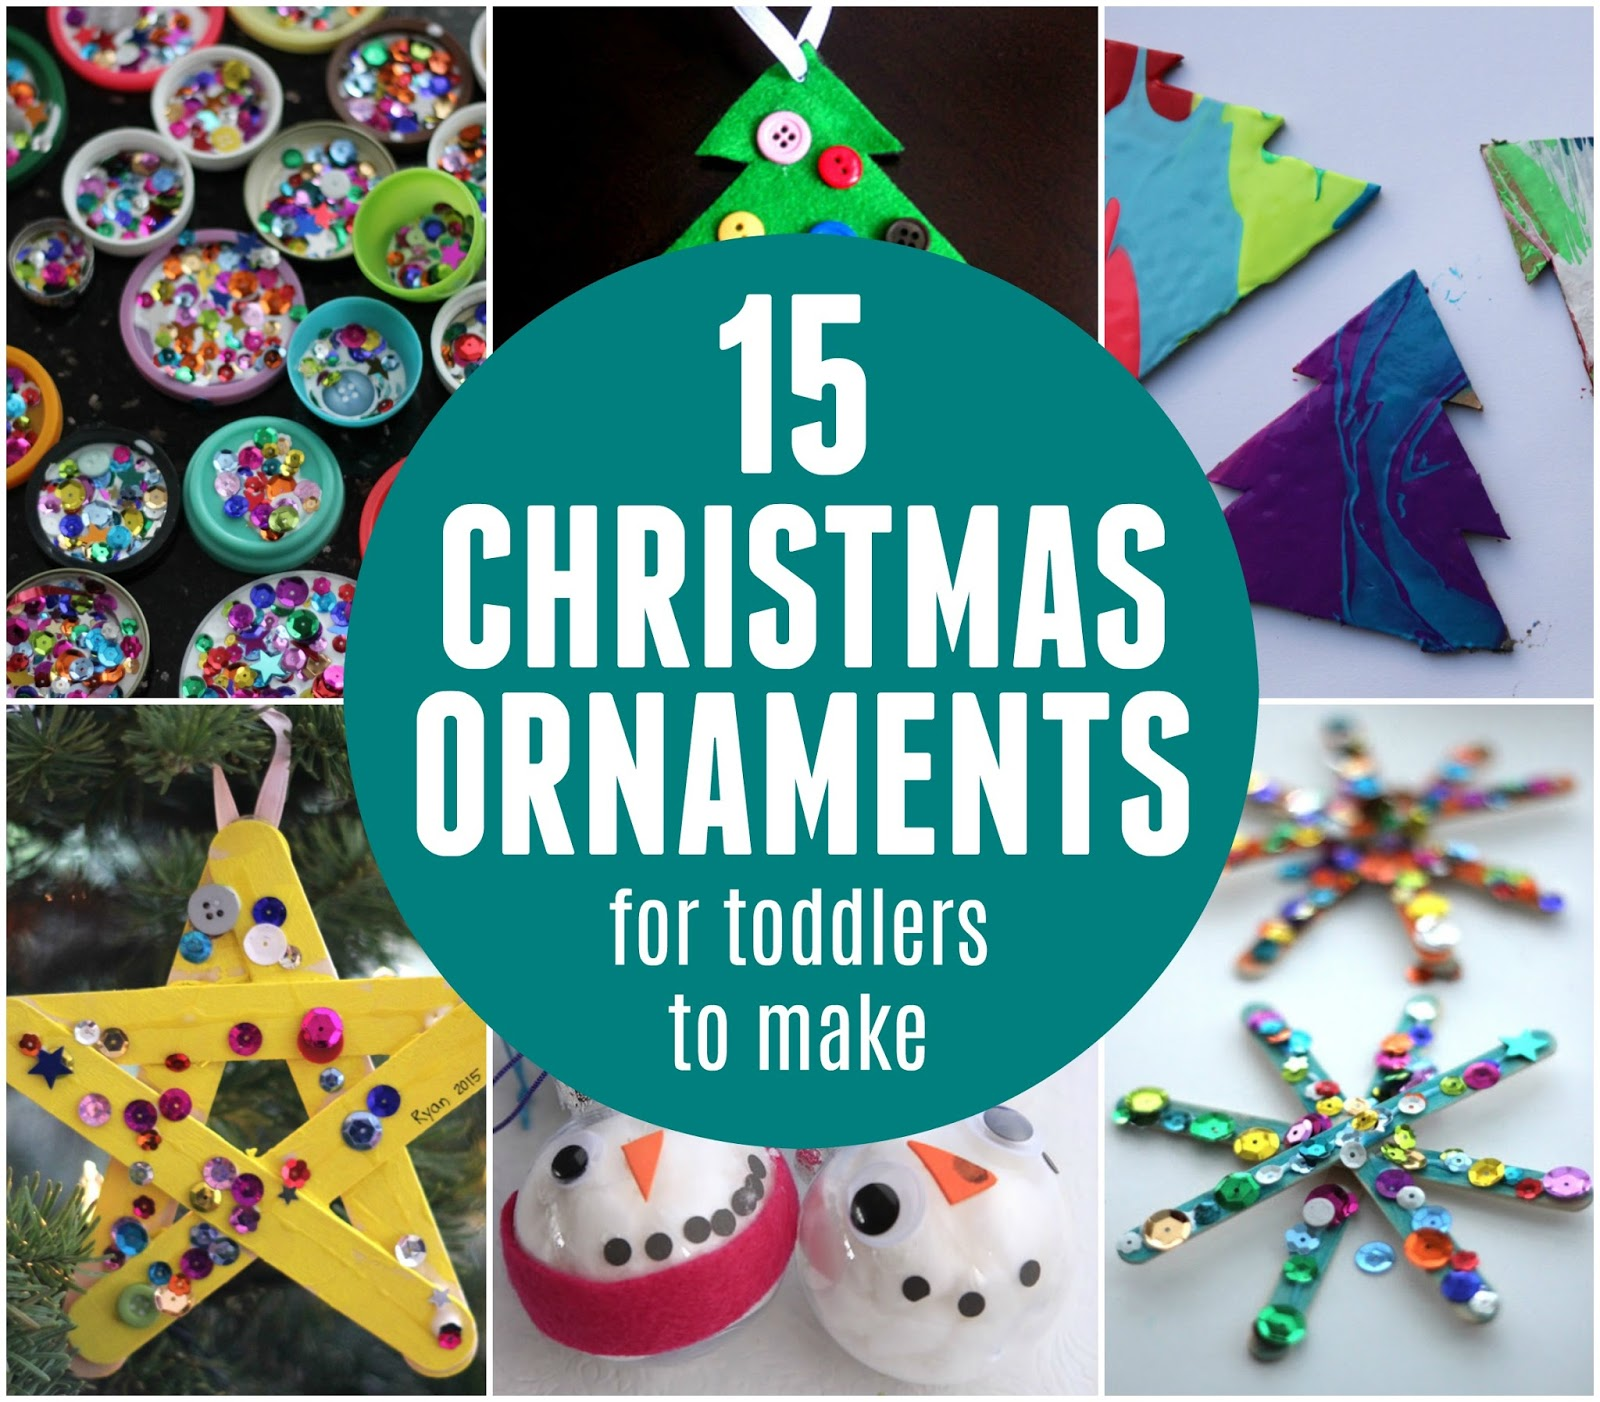 ive collected 15 awesome christmas ornaments that are toddler friendly most can be done by kiddos age 2 and up some can be done with younger kids